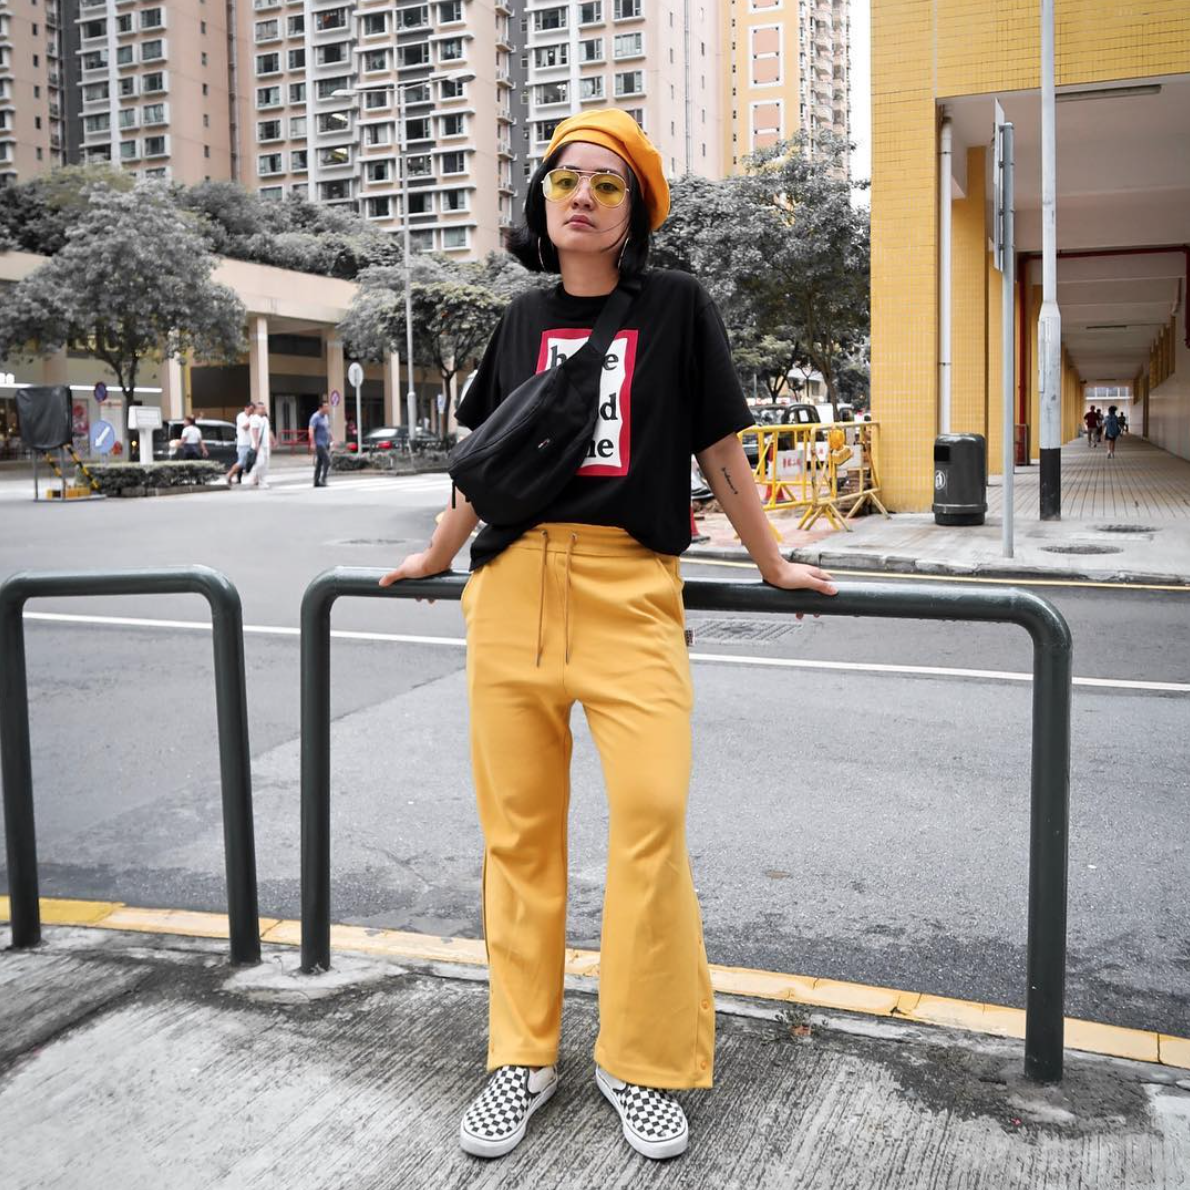 af3593b8d2d51a This street style look is brought to you by the color yellow. ⚡ Photo via  @misscarlaviolet